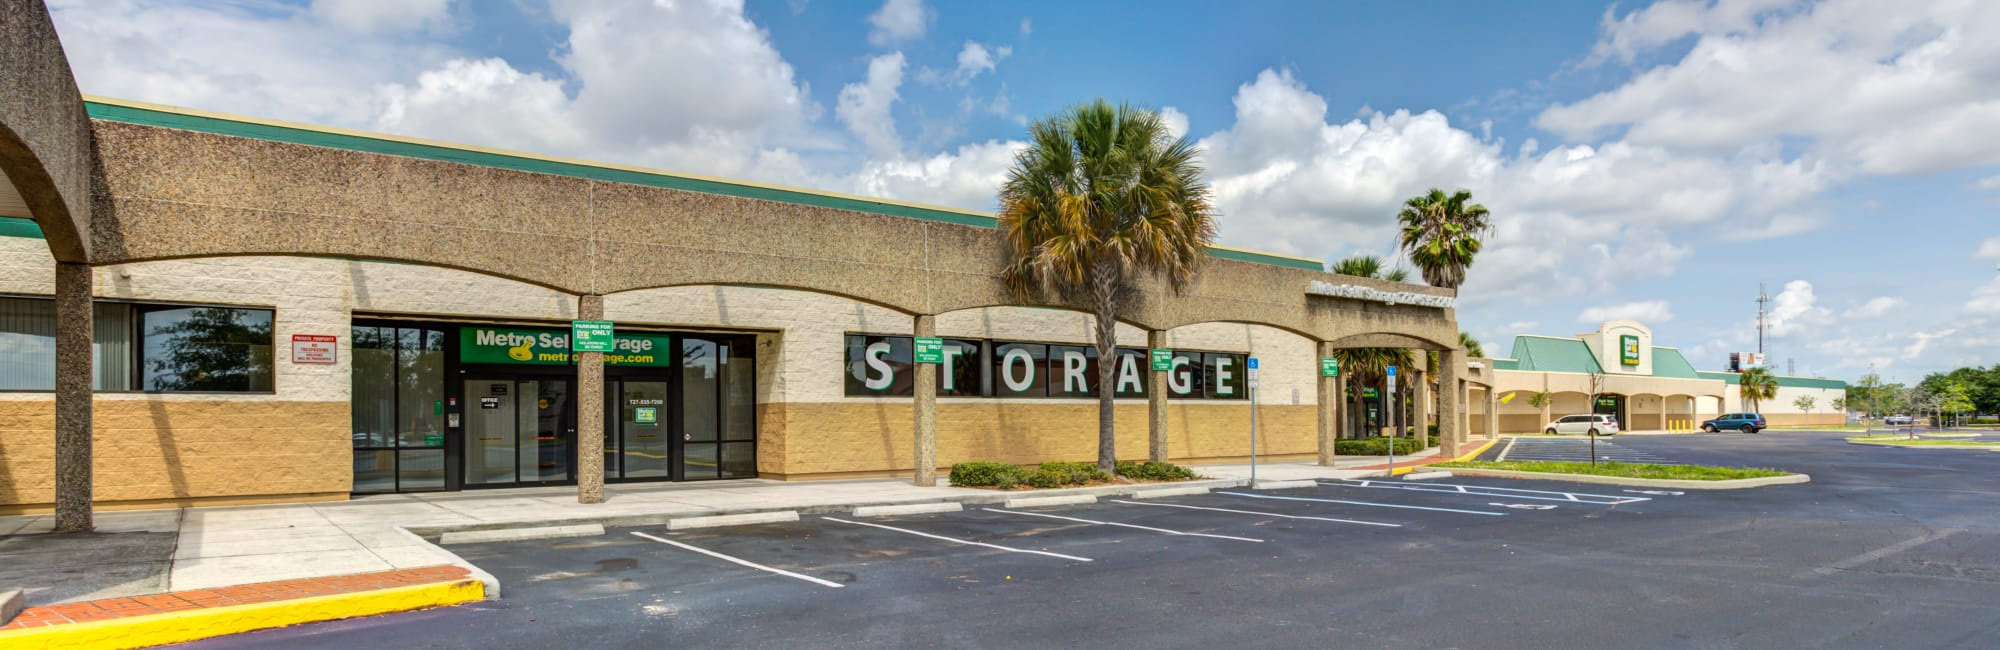 Metro Self Storage In Largo, FL